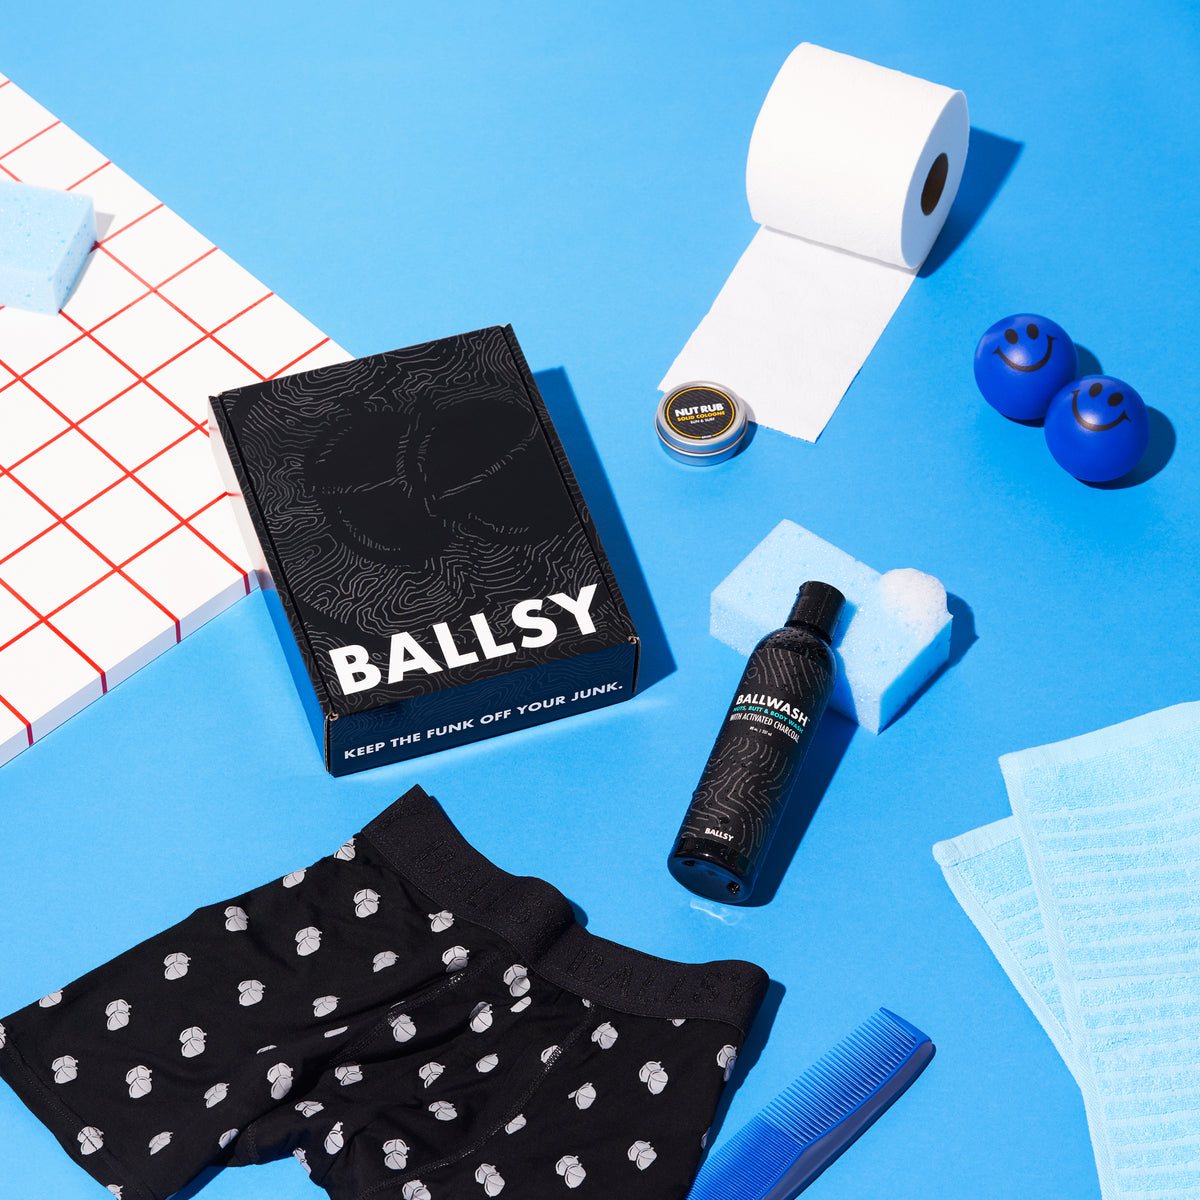 A package from Ballsy next to a pair of boxers and other bathroom items.